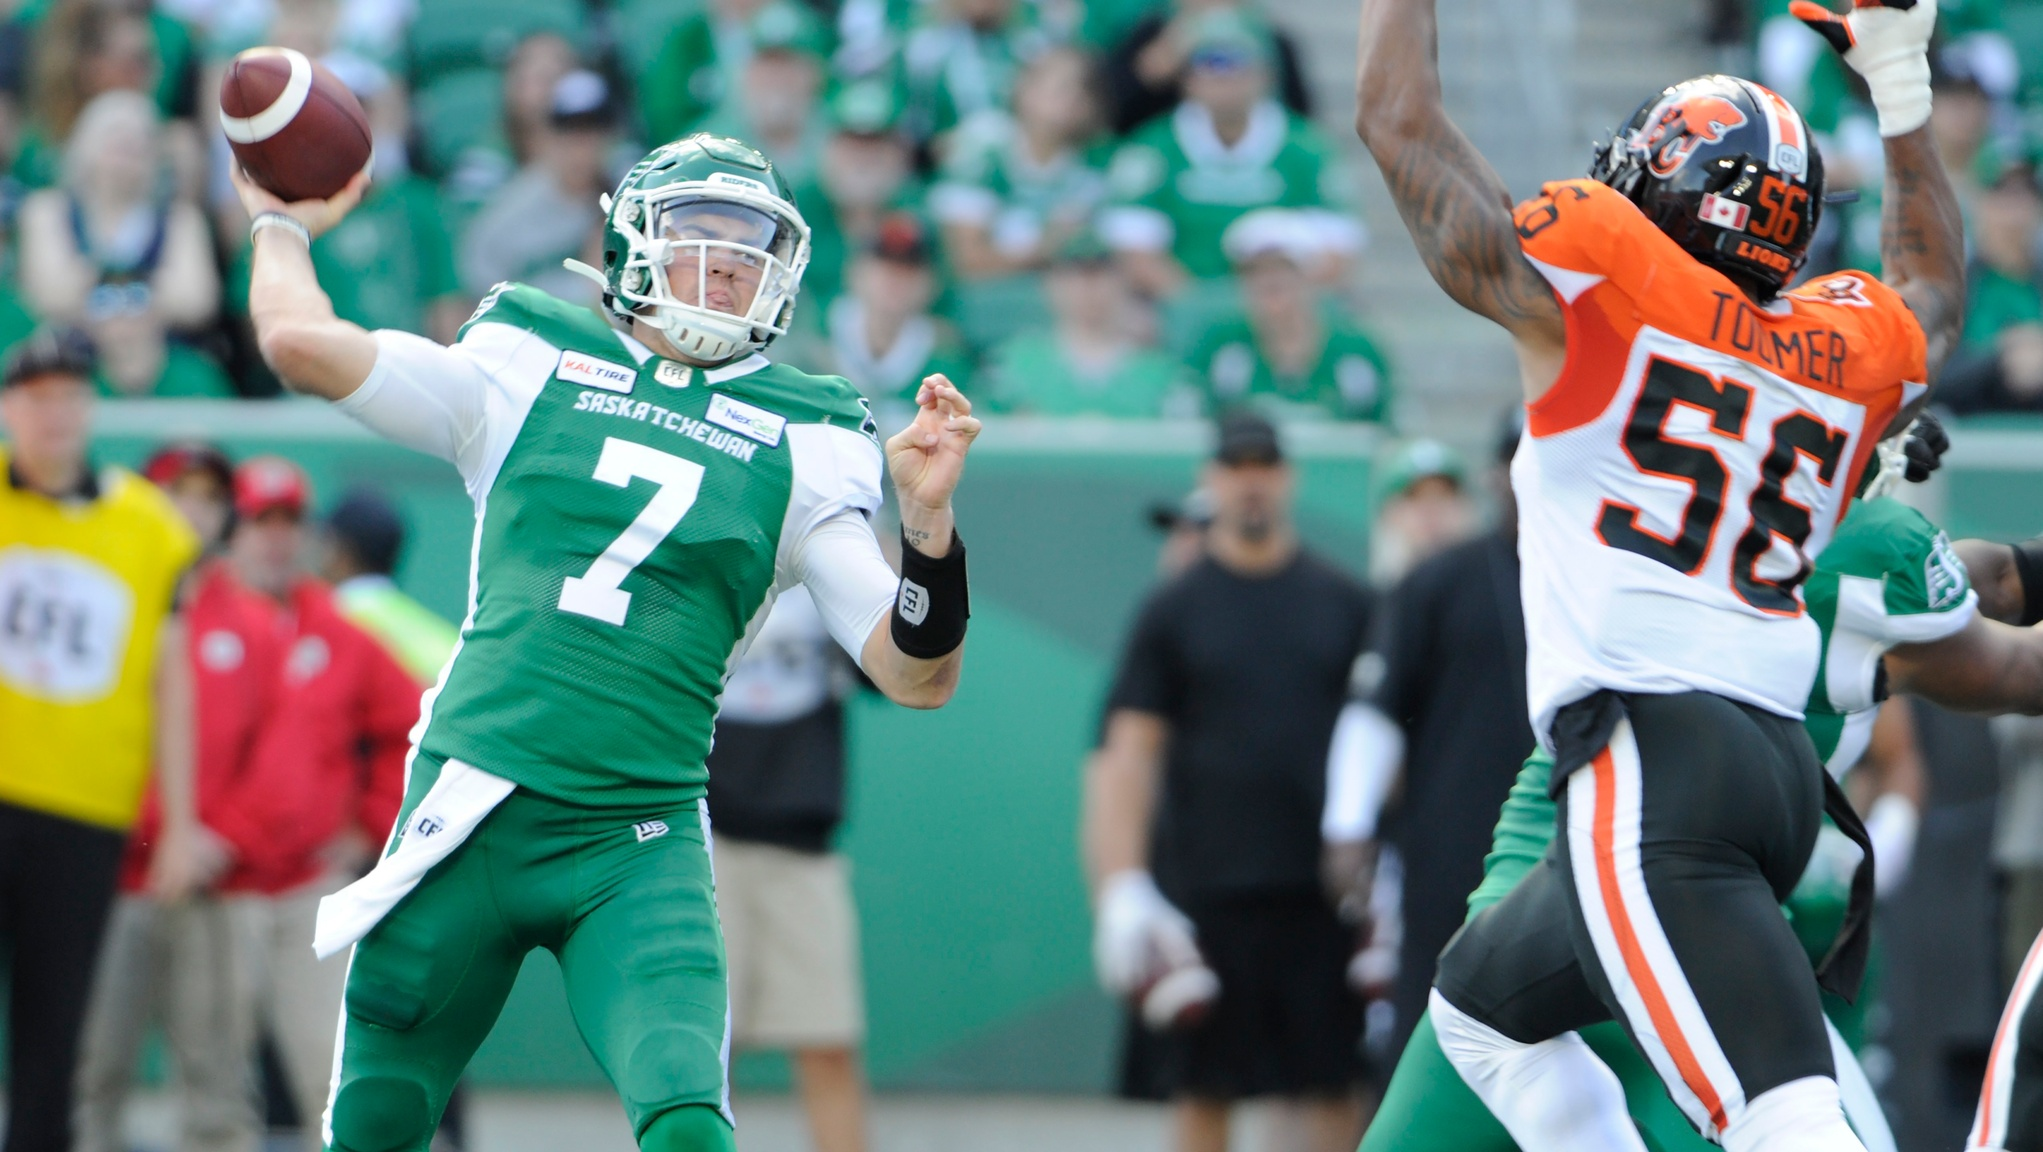 Riders win back-and-forth clash with Lions - CFL.ca